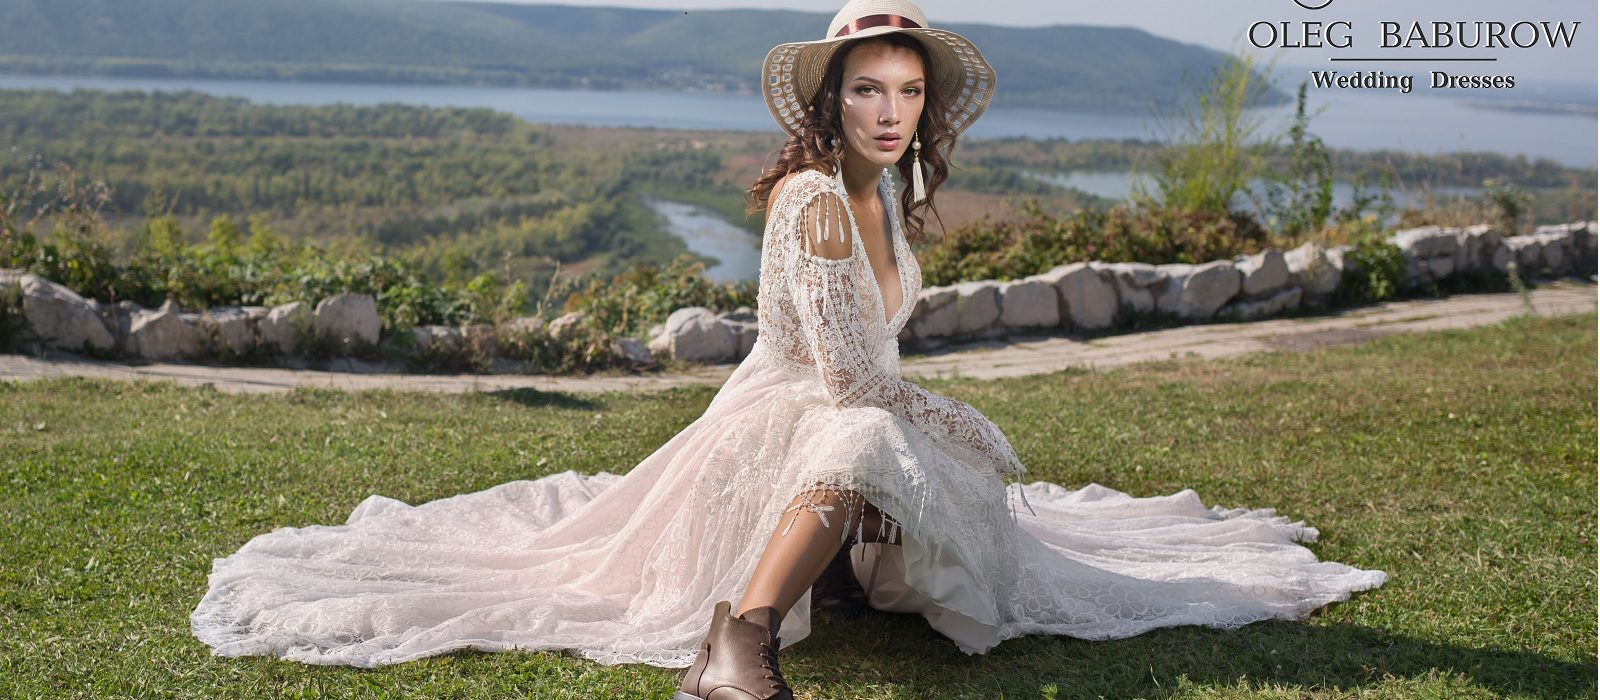 e50ae3ffa87 Главная - Oleg Baburow Wedding Dresses